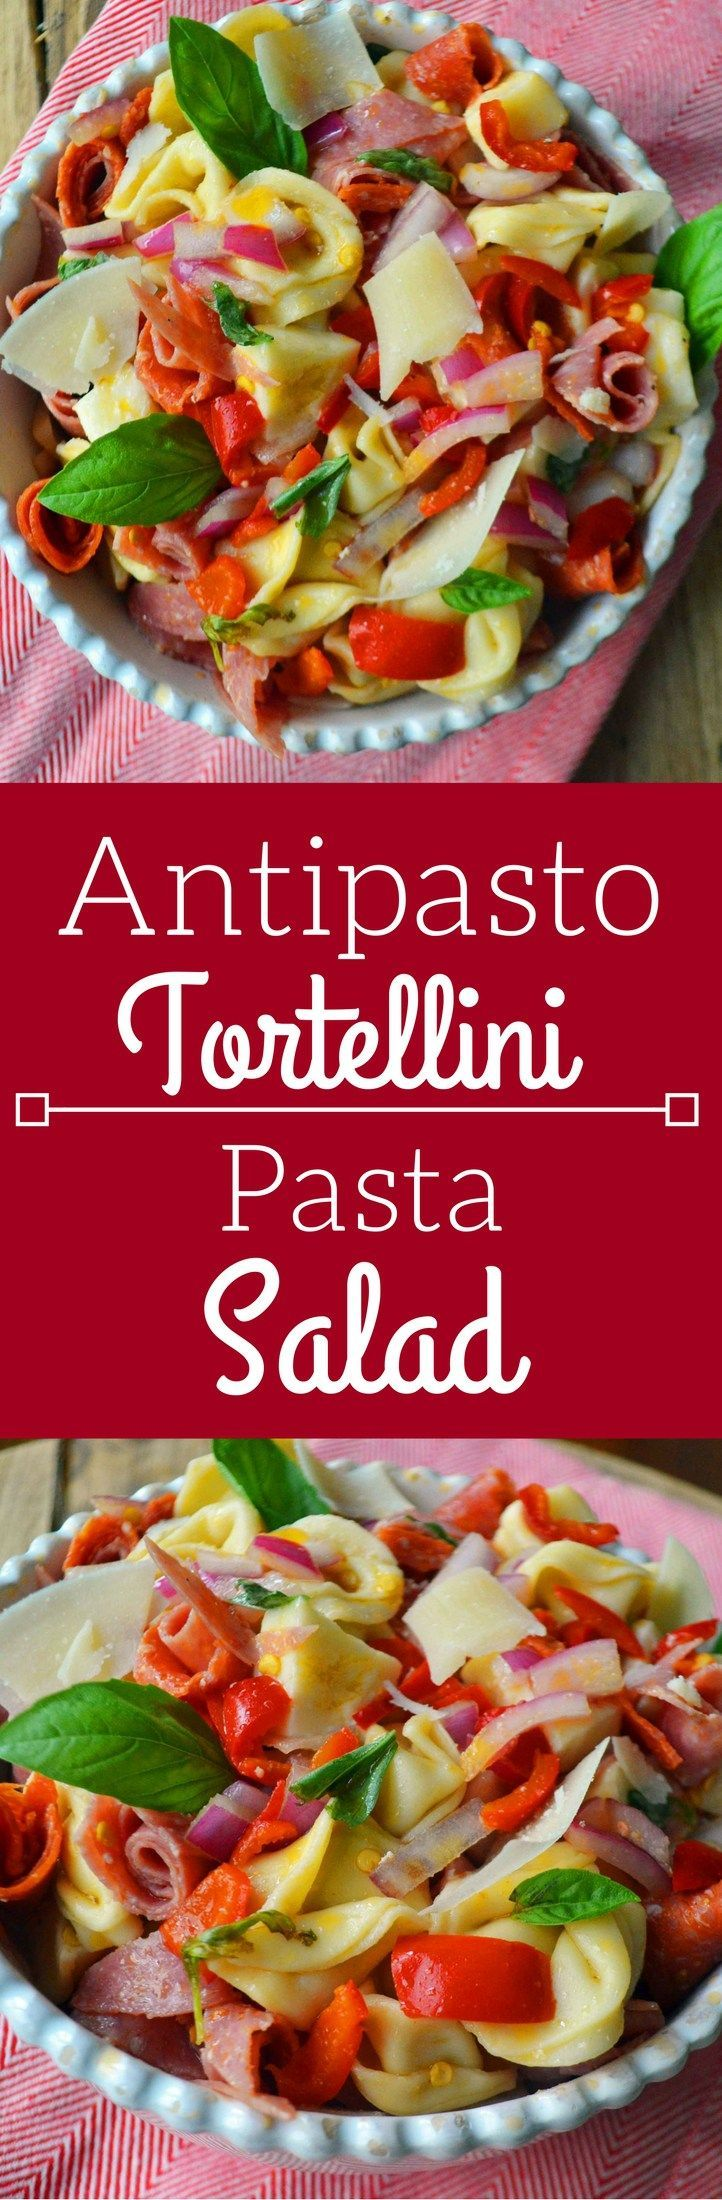 Antipasto Tortellini Pasta Salad. This Antipasto Tortellini Pasta Salad starts off with creamy cheese tortellini topped with Genoa salami, pepperoni, fresh mozzarella, roasted red peppers, red onion, fresh basil, and finished off with an olive oil and red